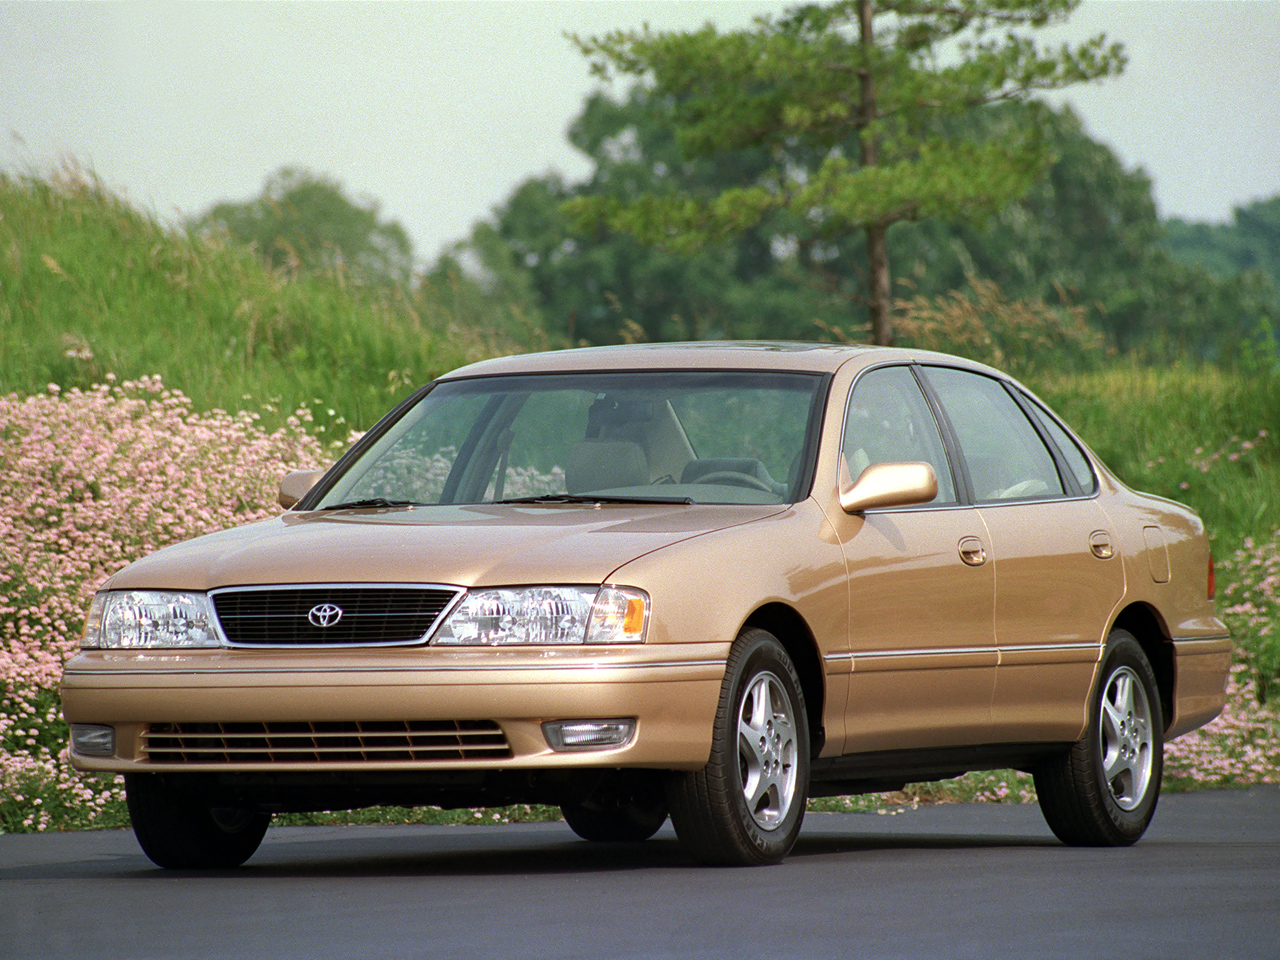 1998 toyota avalon pictures information and specs. Black Bedroom Furniture Sets. Home Design Ideas